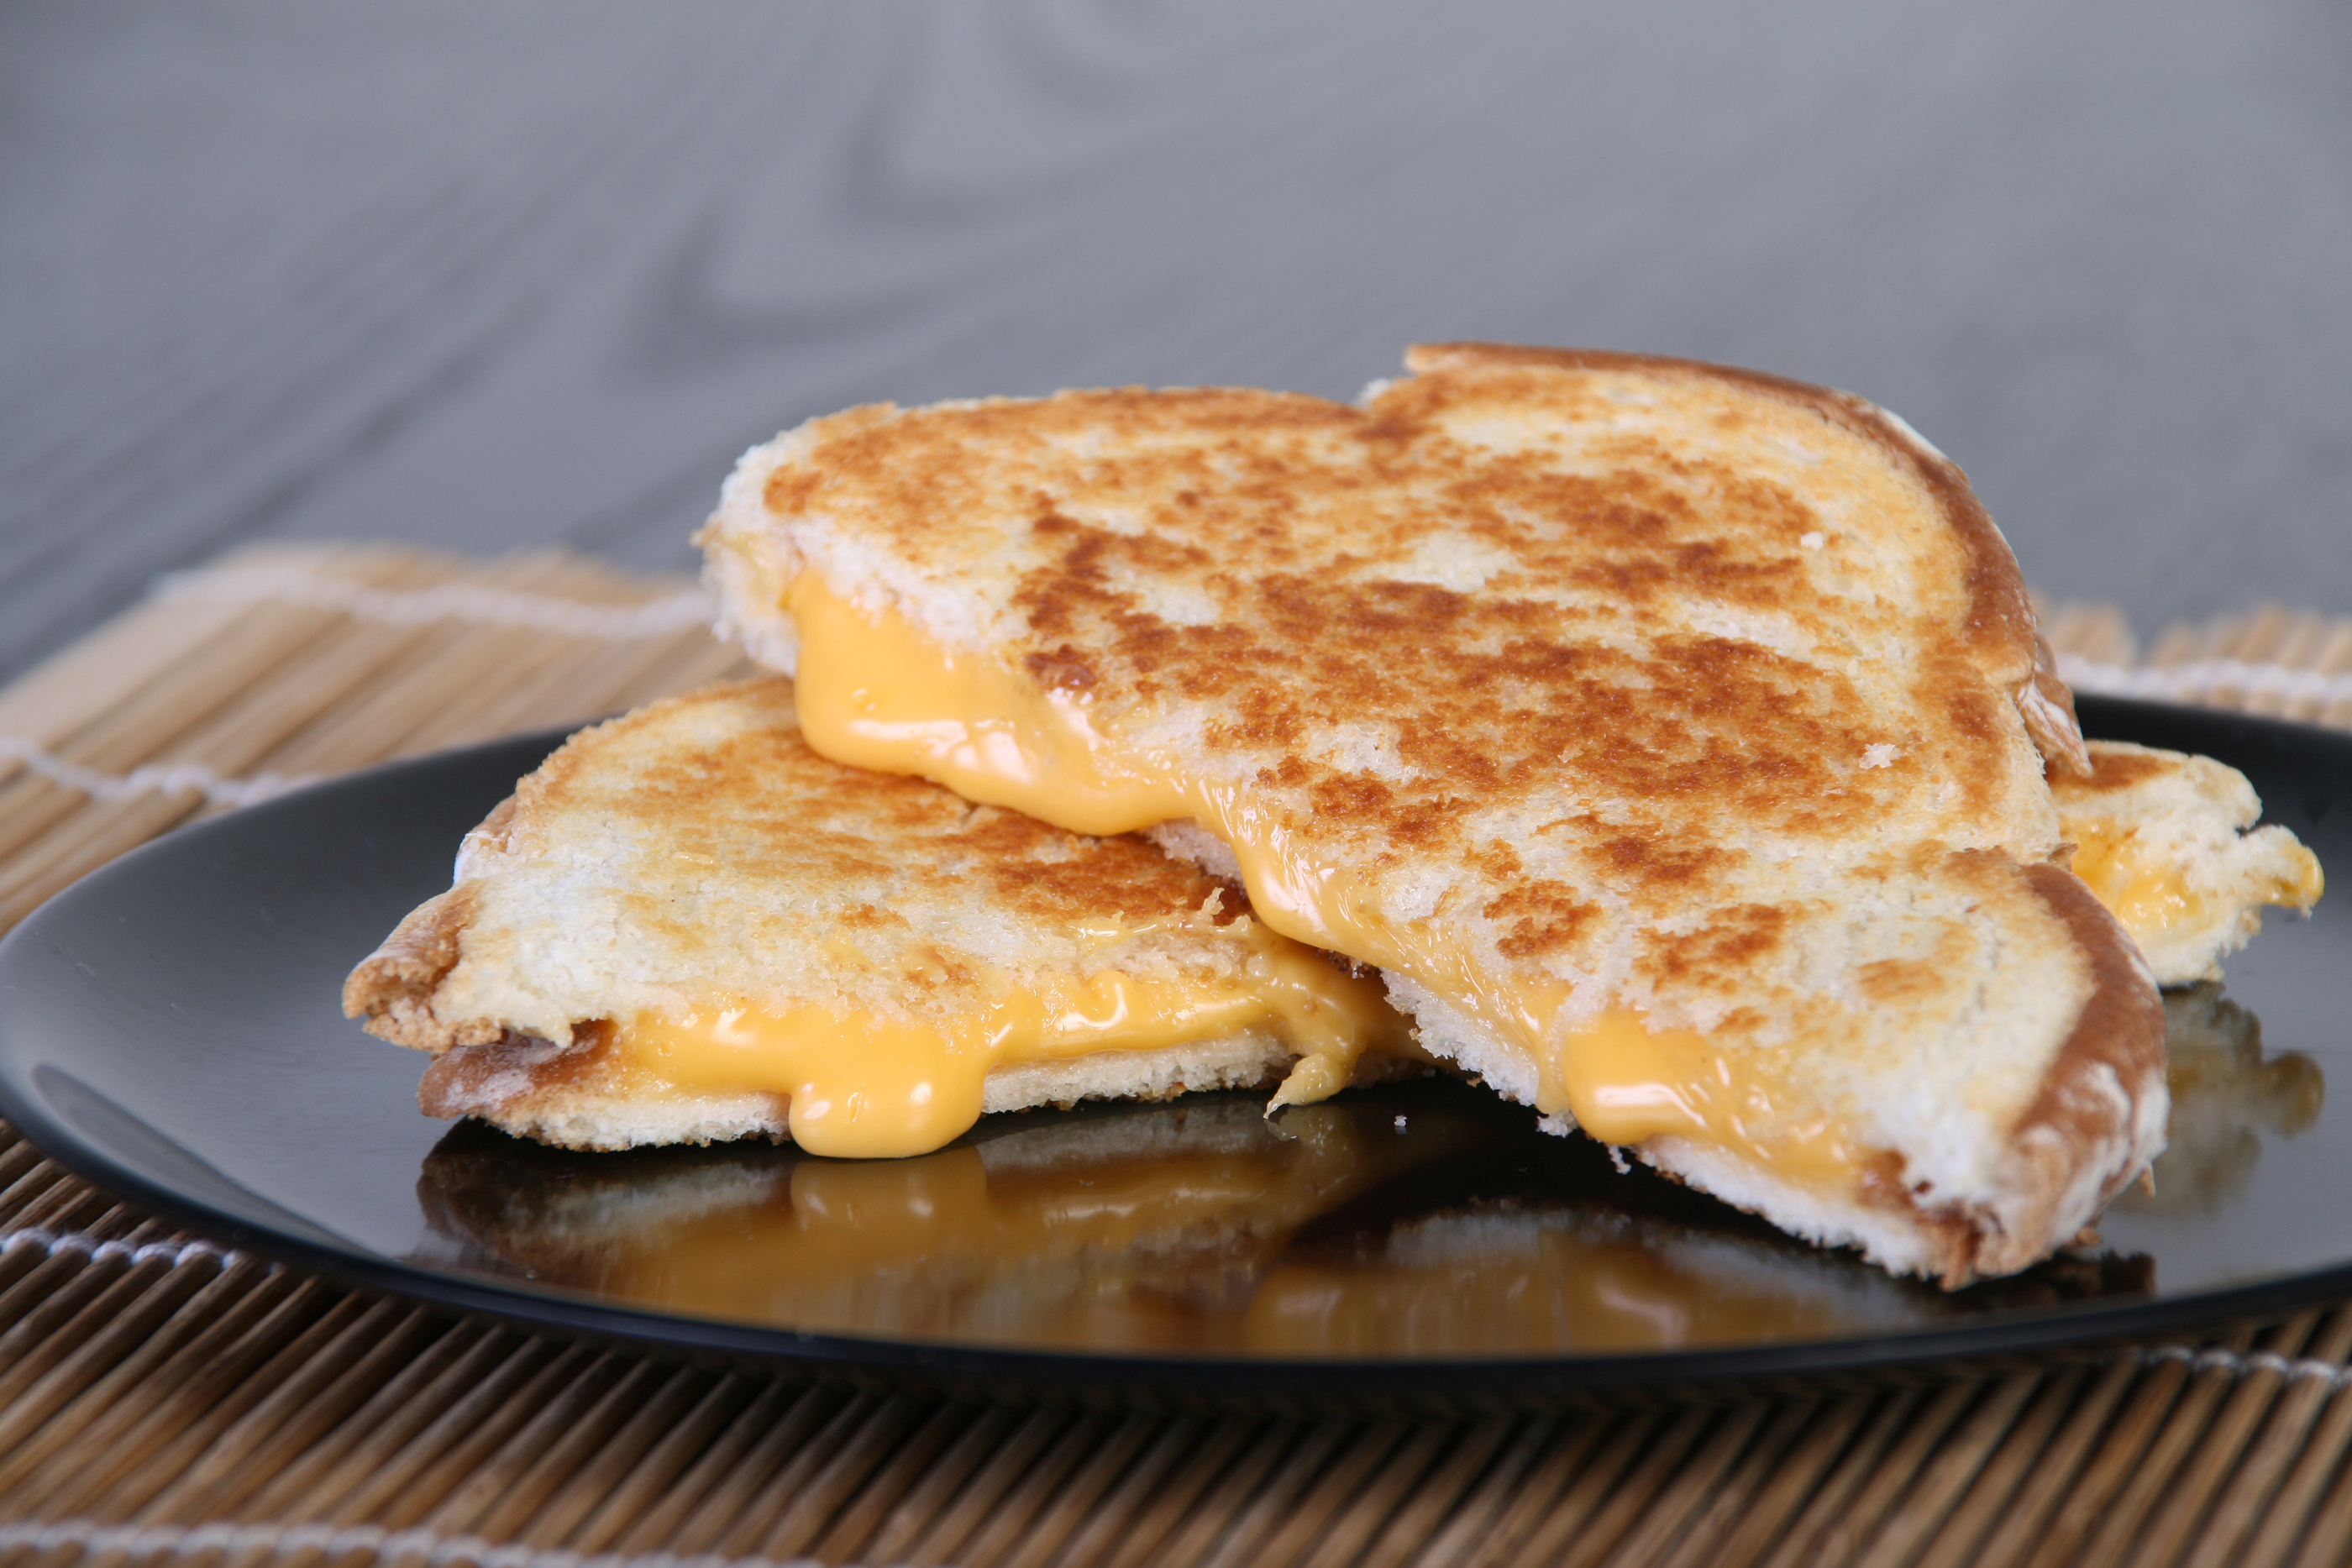 Who makes the best grilled cheese sandwich in STL?